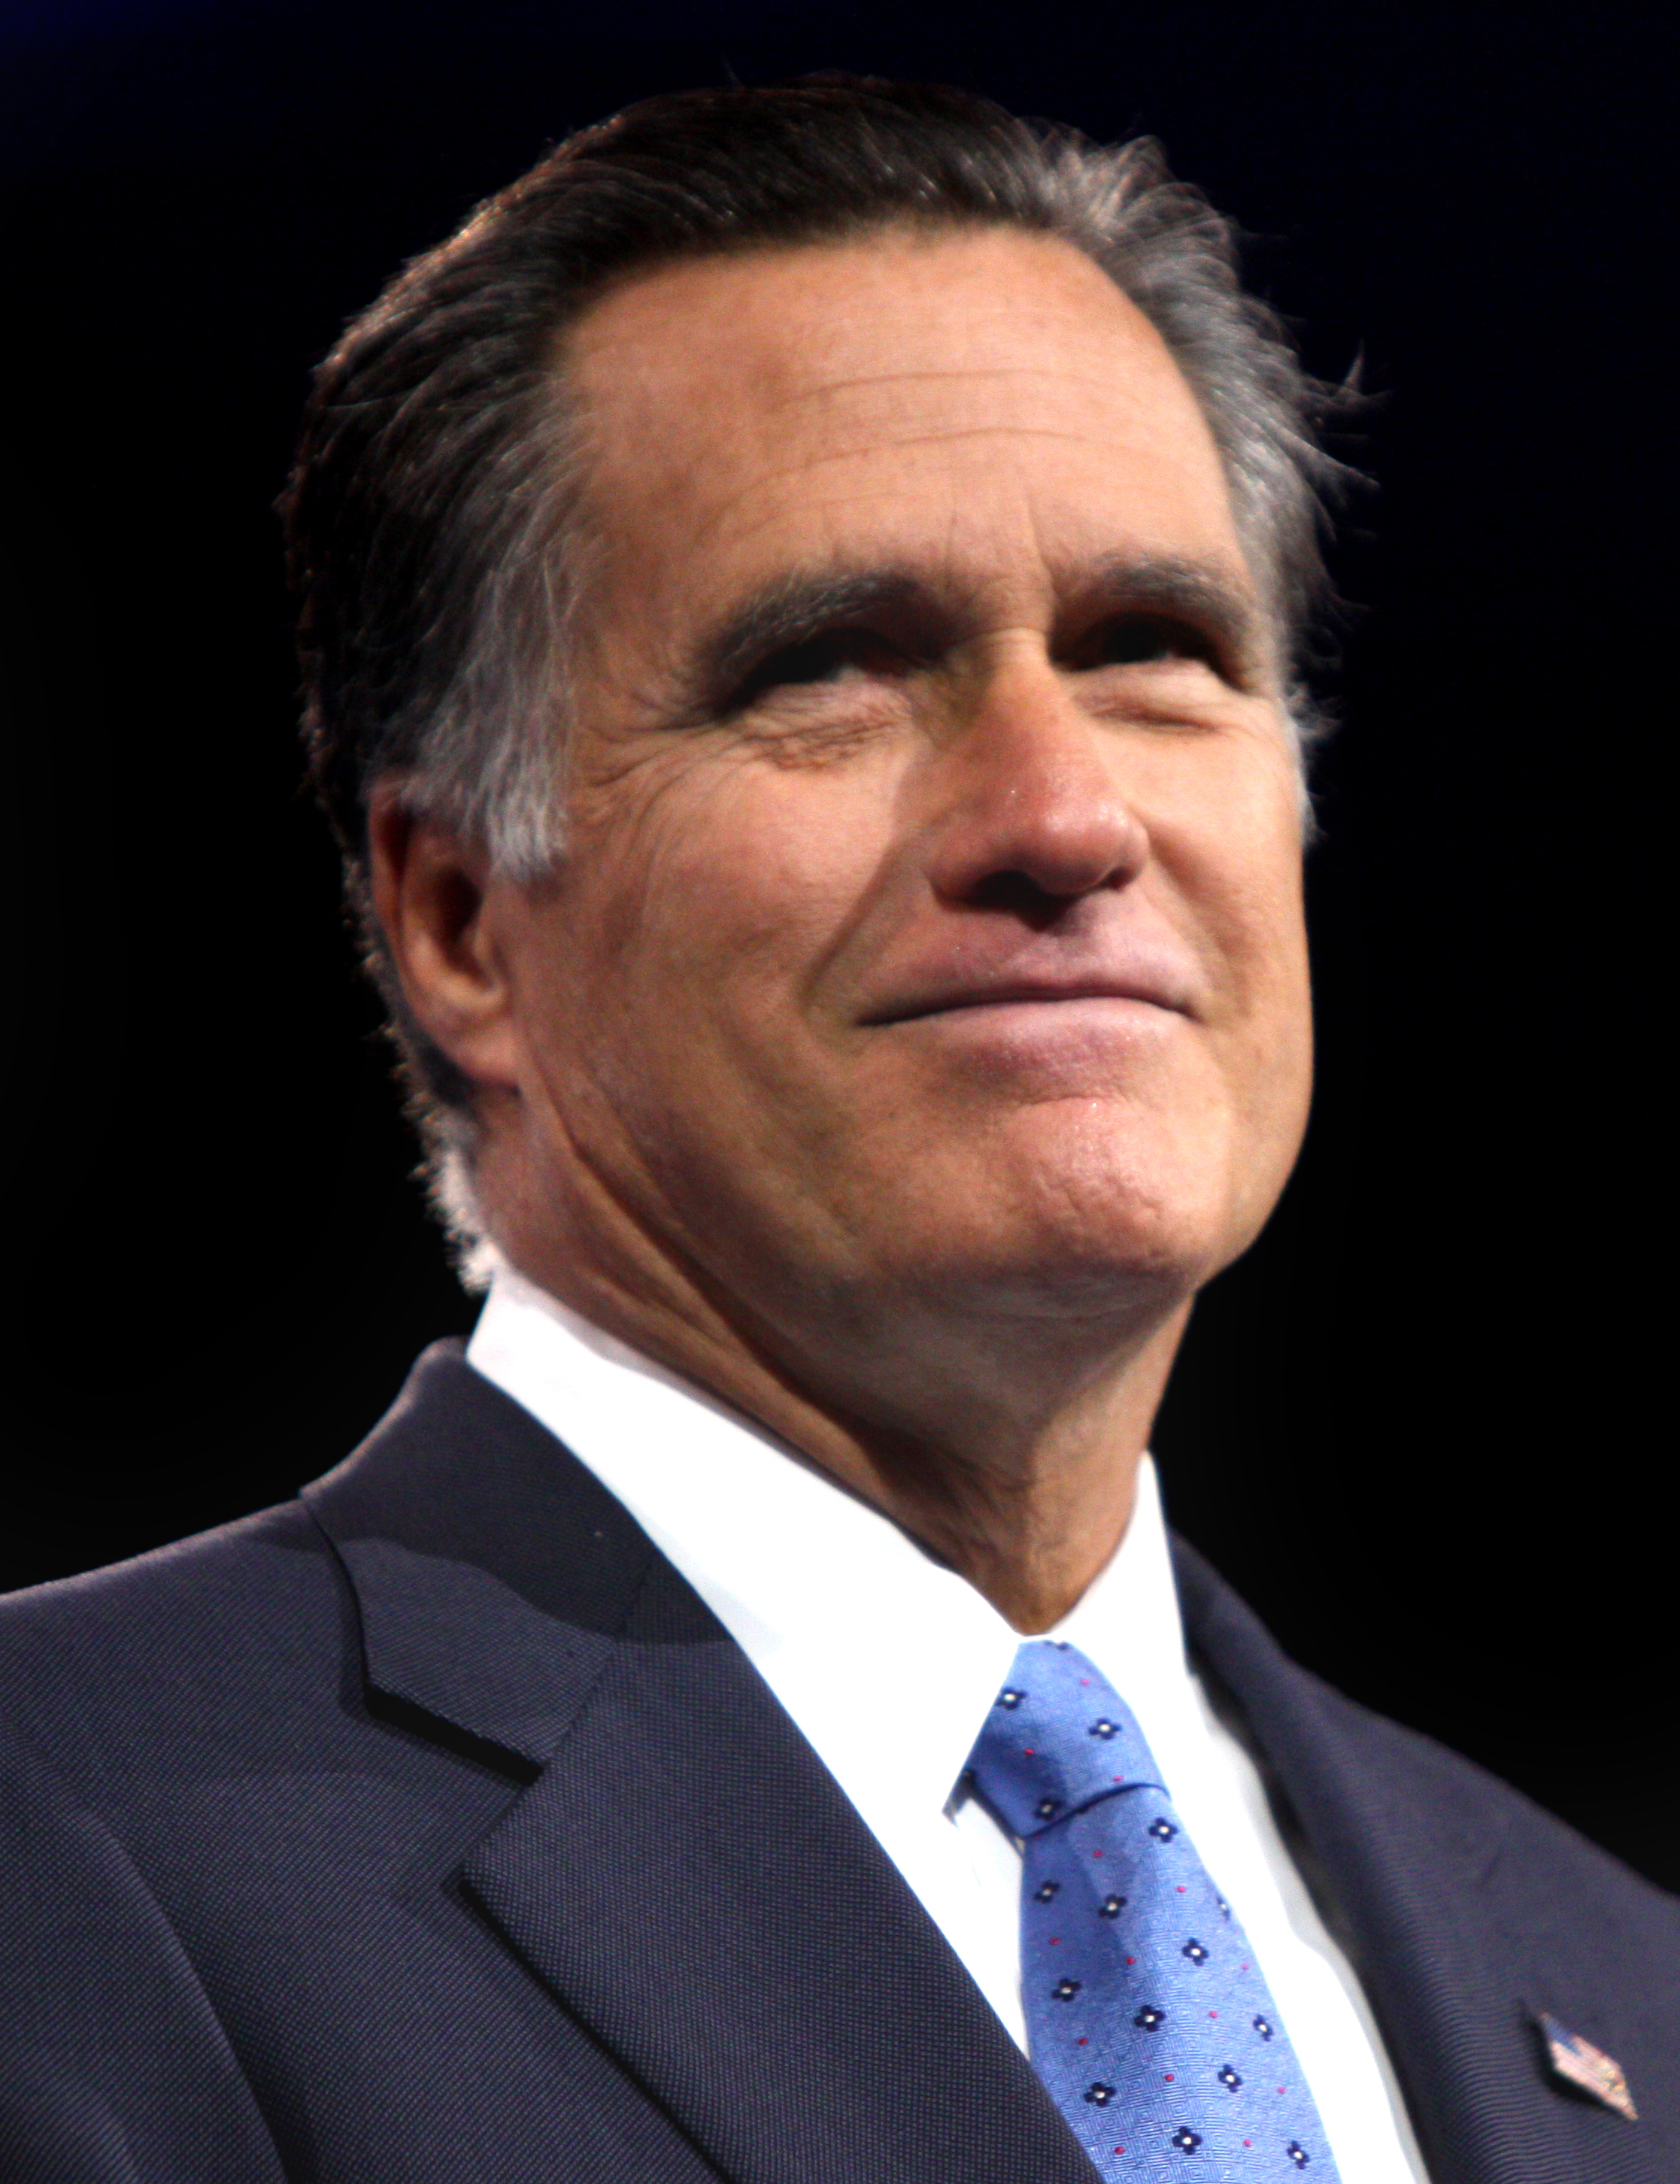 Pence Says Mitt Romney Under Active Consideration To Be